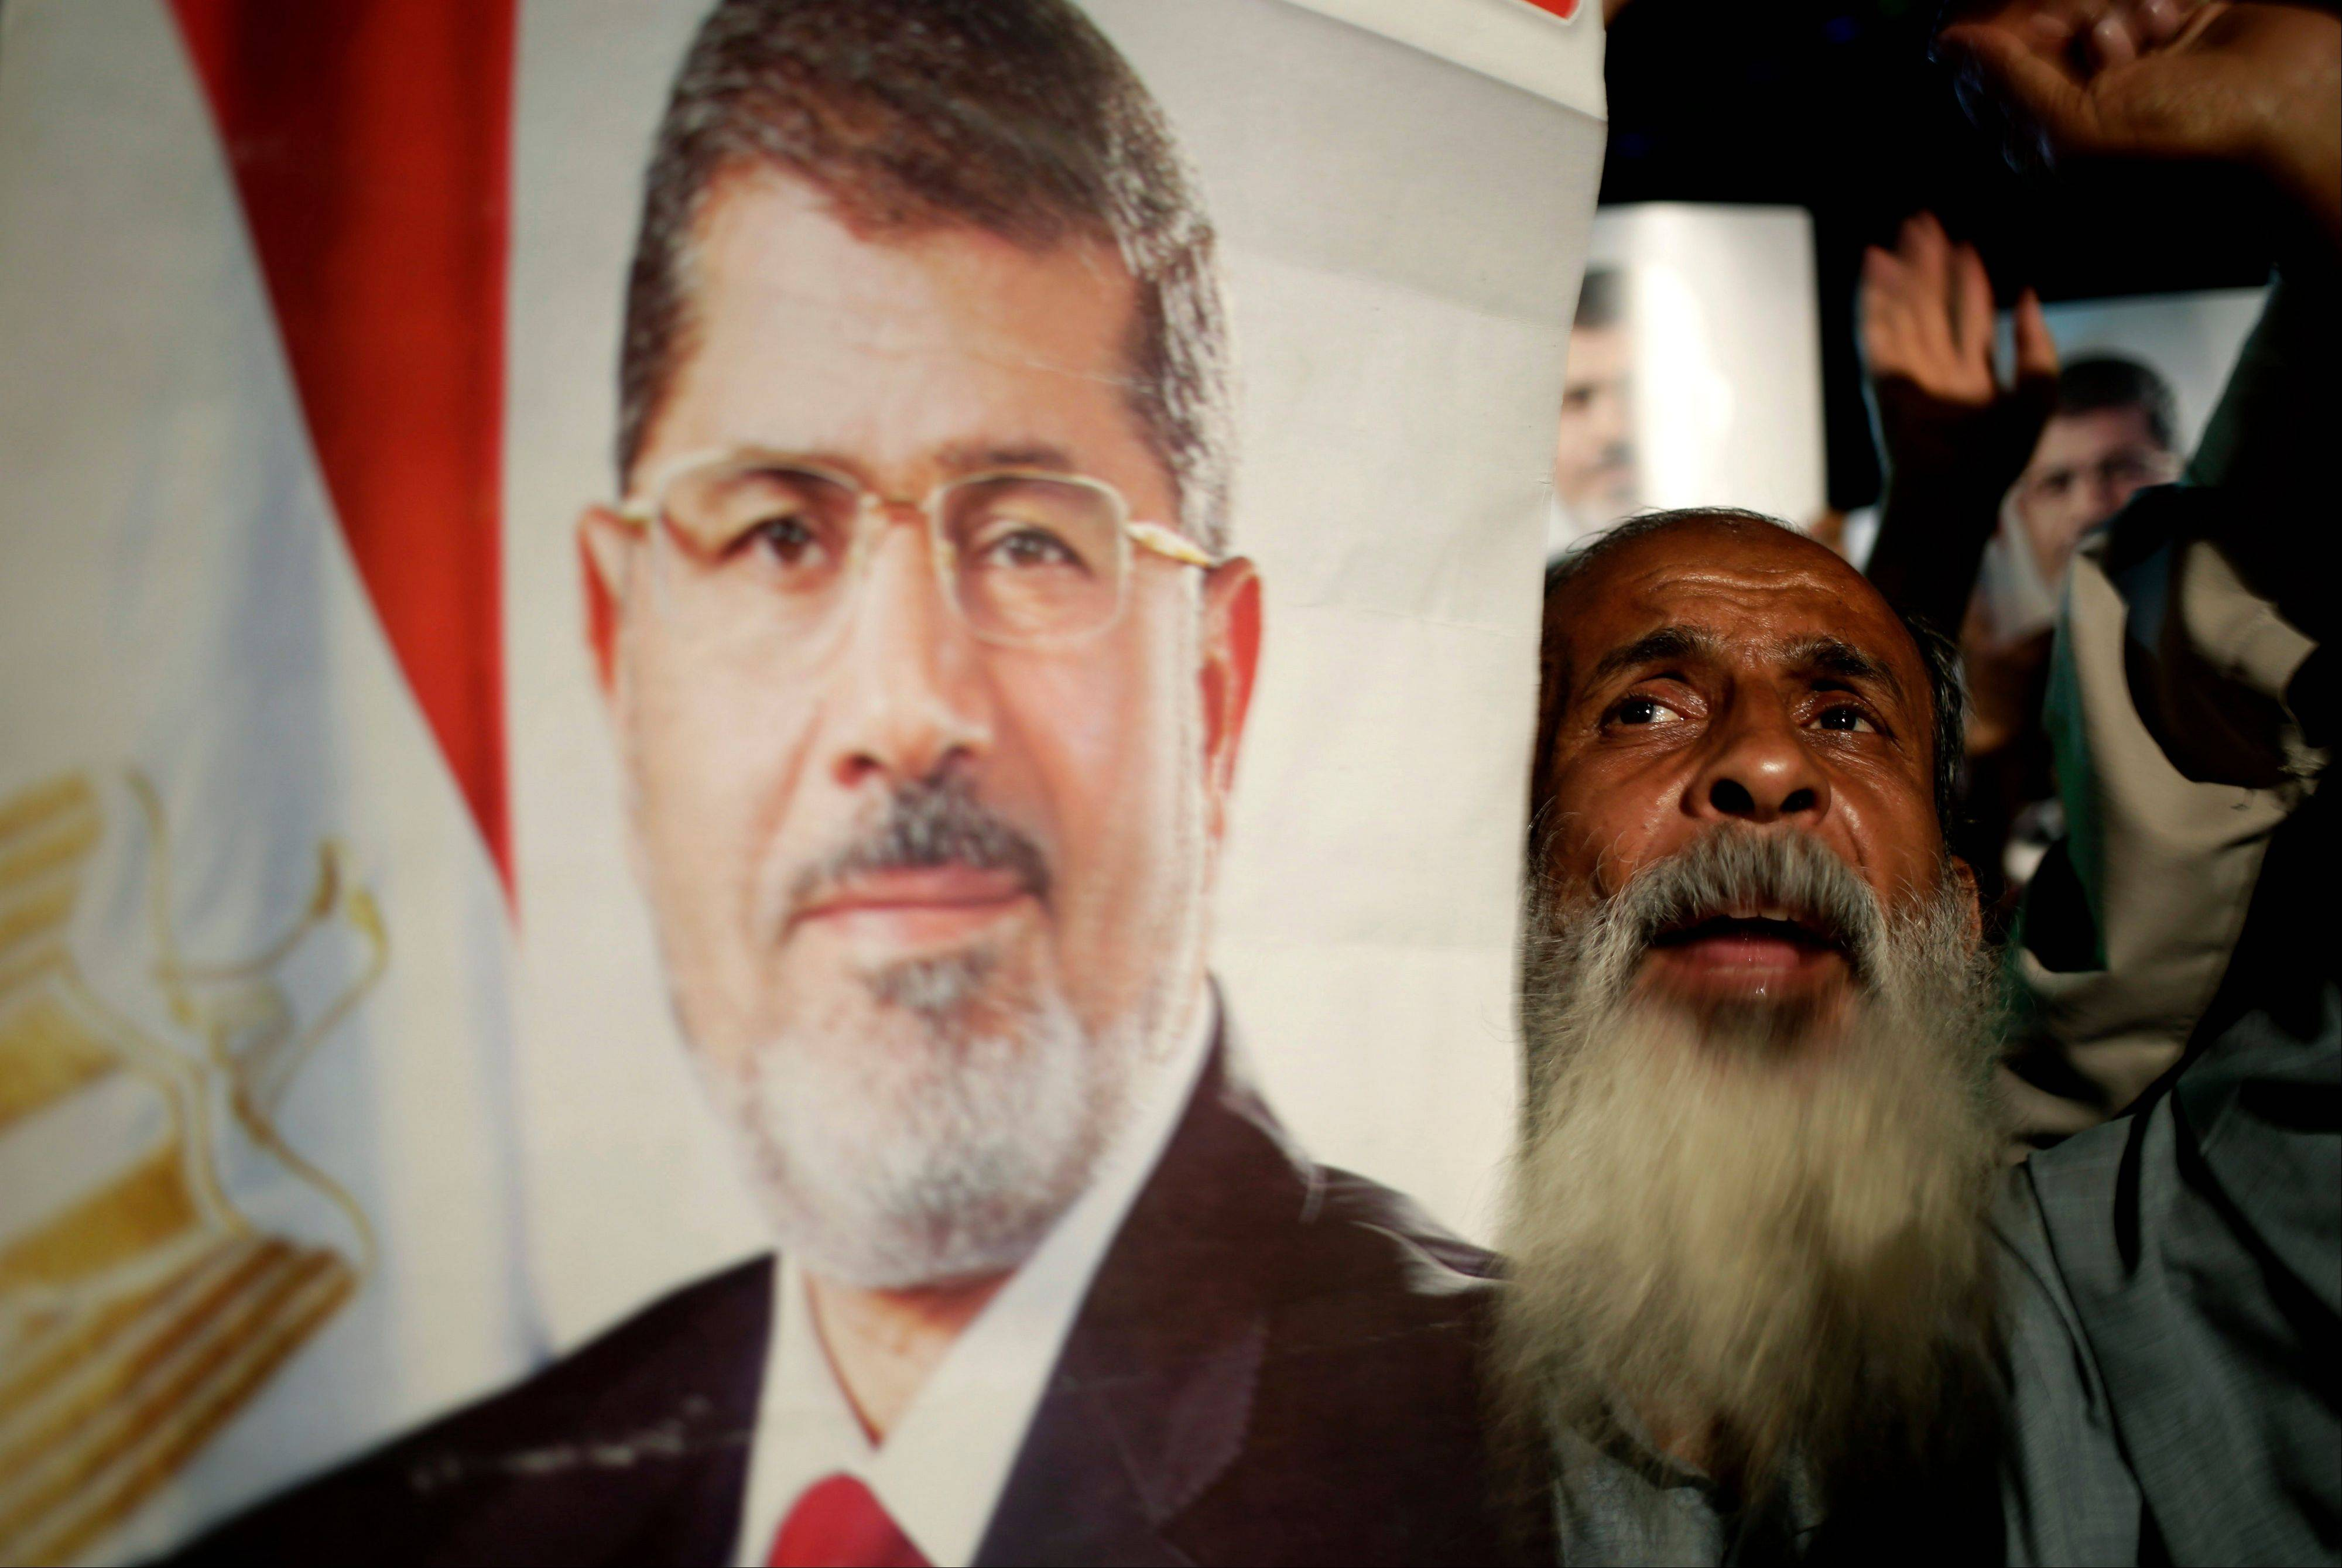 Supporters of Egypt�s ousted President Mohammed Morsi chant slogans against Egyptian Defense Minister Gen. Abdel-Fattah el-Sissi at Nasr City, where protesters have installed a camp and hold daily rallies, in Cairo, Egypt, Sunday.